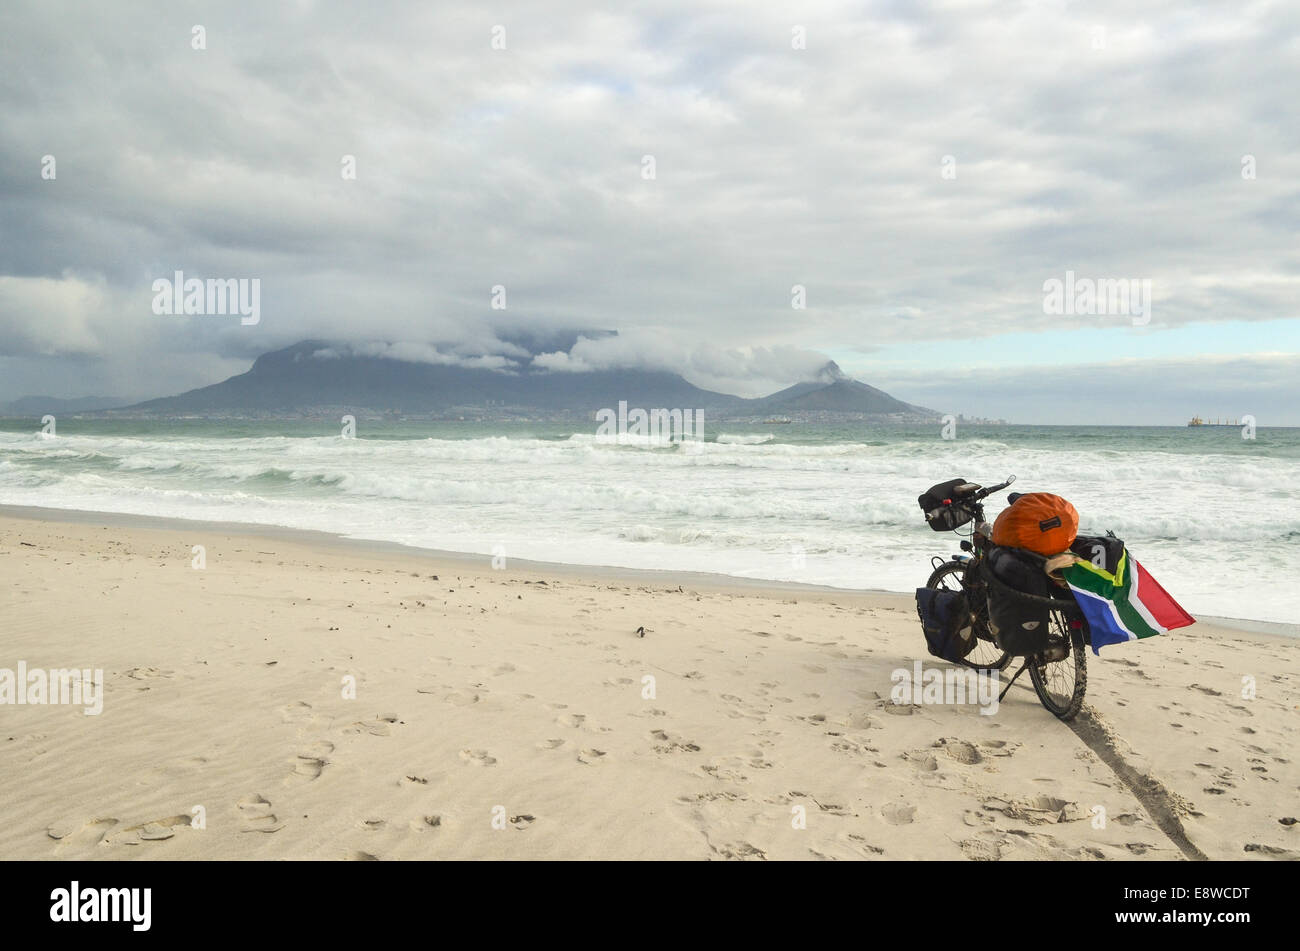 Cycle touring in Africa, a touring bicycle on the beach in Cape Town, South Africa, with cloudy skies, Table Mountain - Stock Image